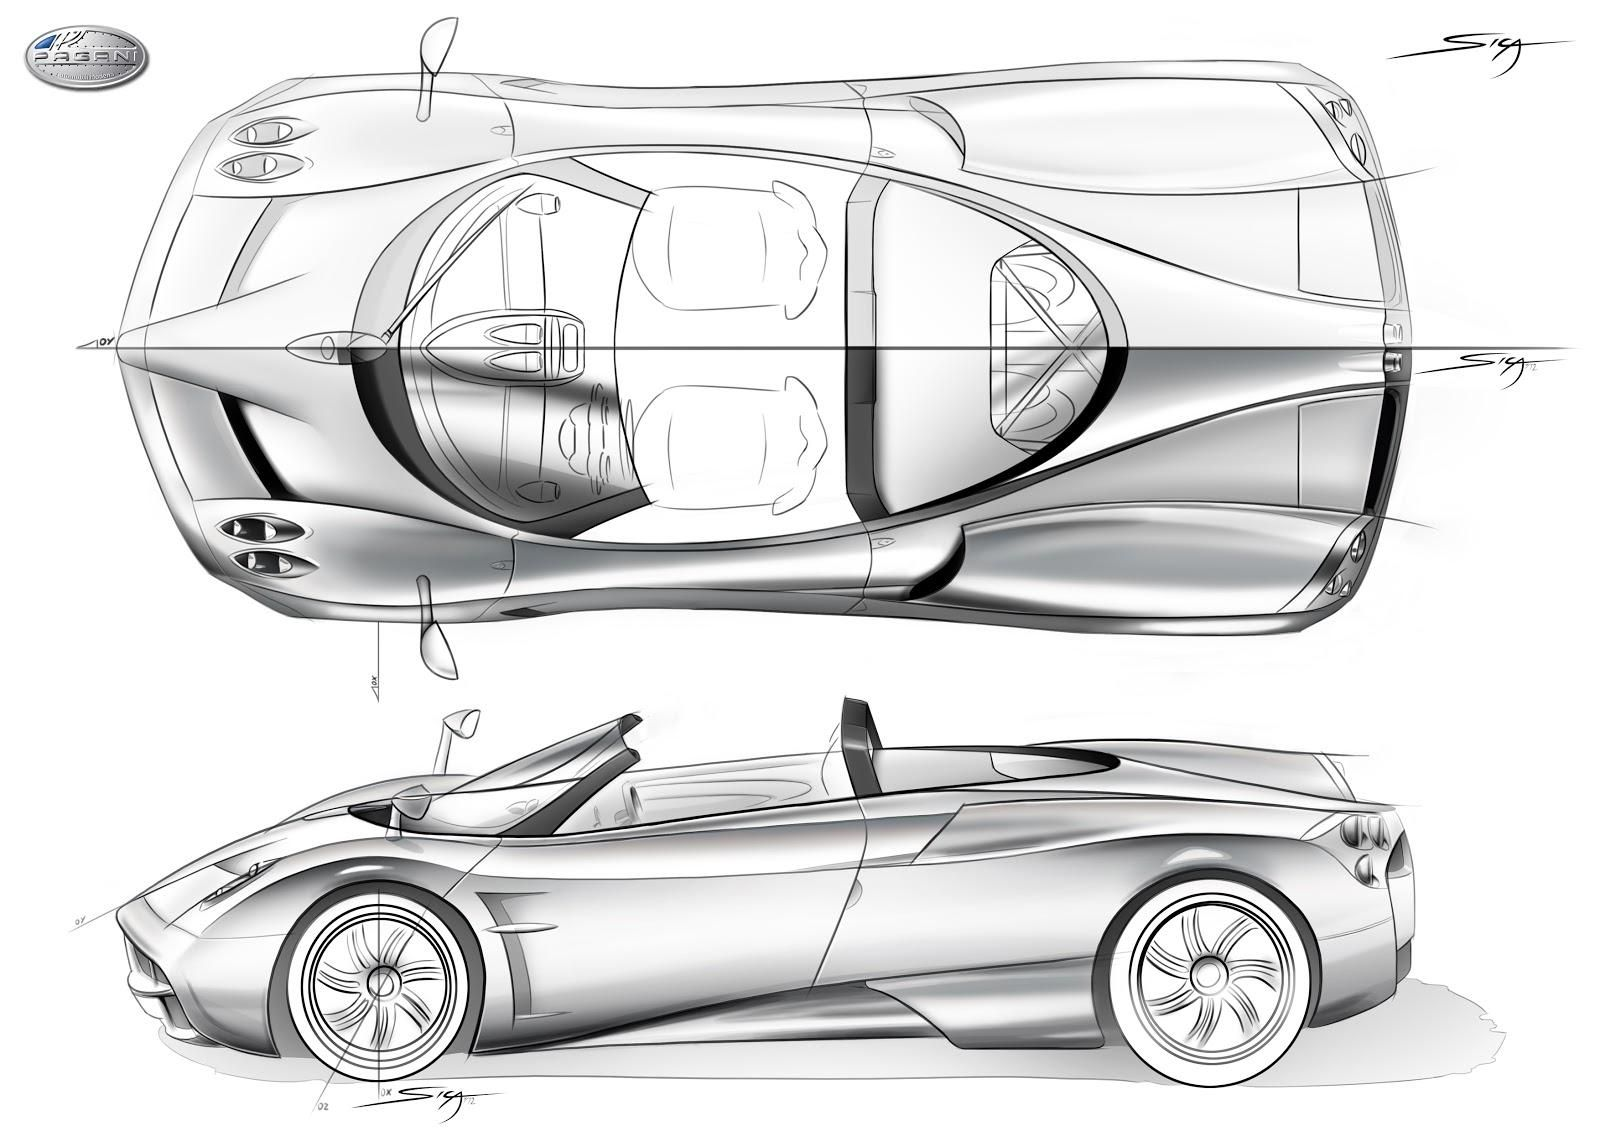 Pagani Huayra Roadster Rendering Sketch Car Design